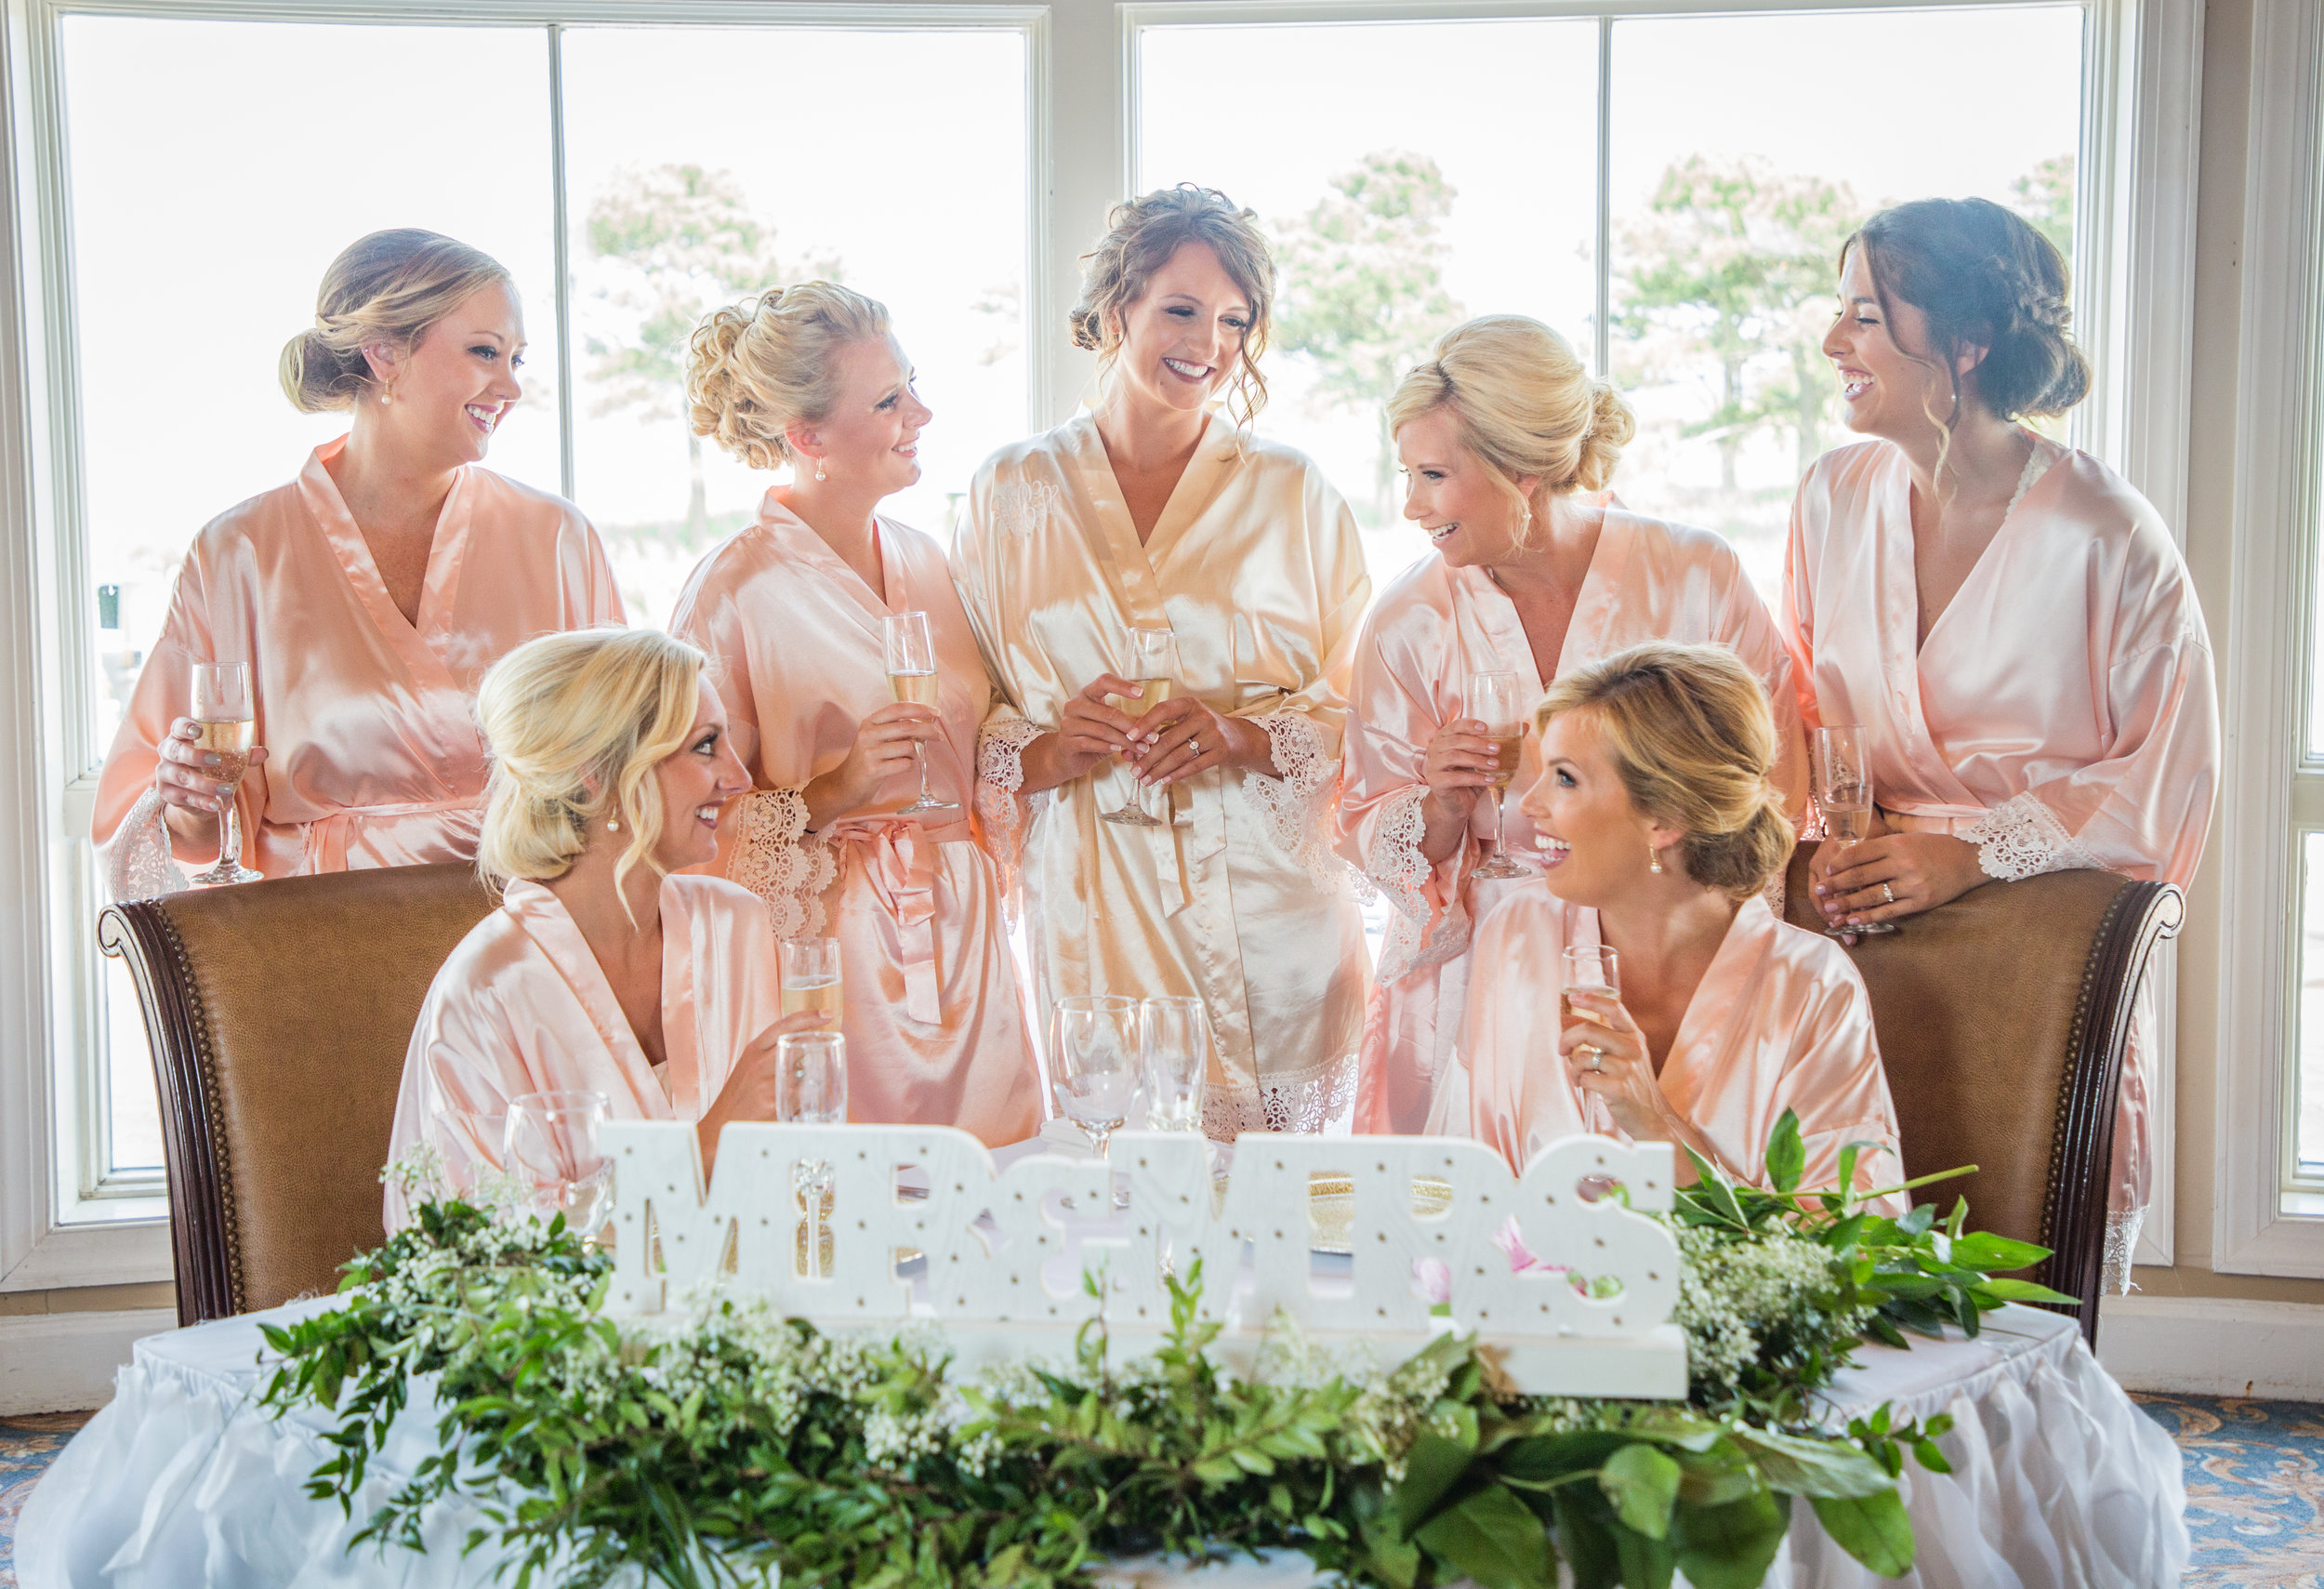 Bride with her bridesmaids get ready for the wedding at Lighthouse Sound. Planning and styling by  https://alisontothealtaroc.com/